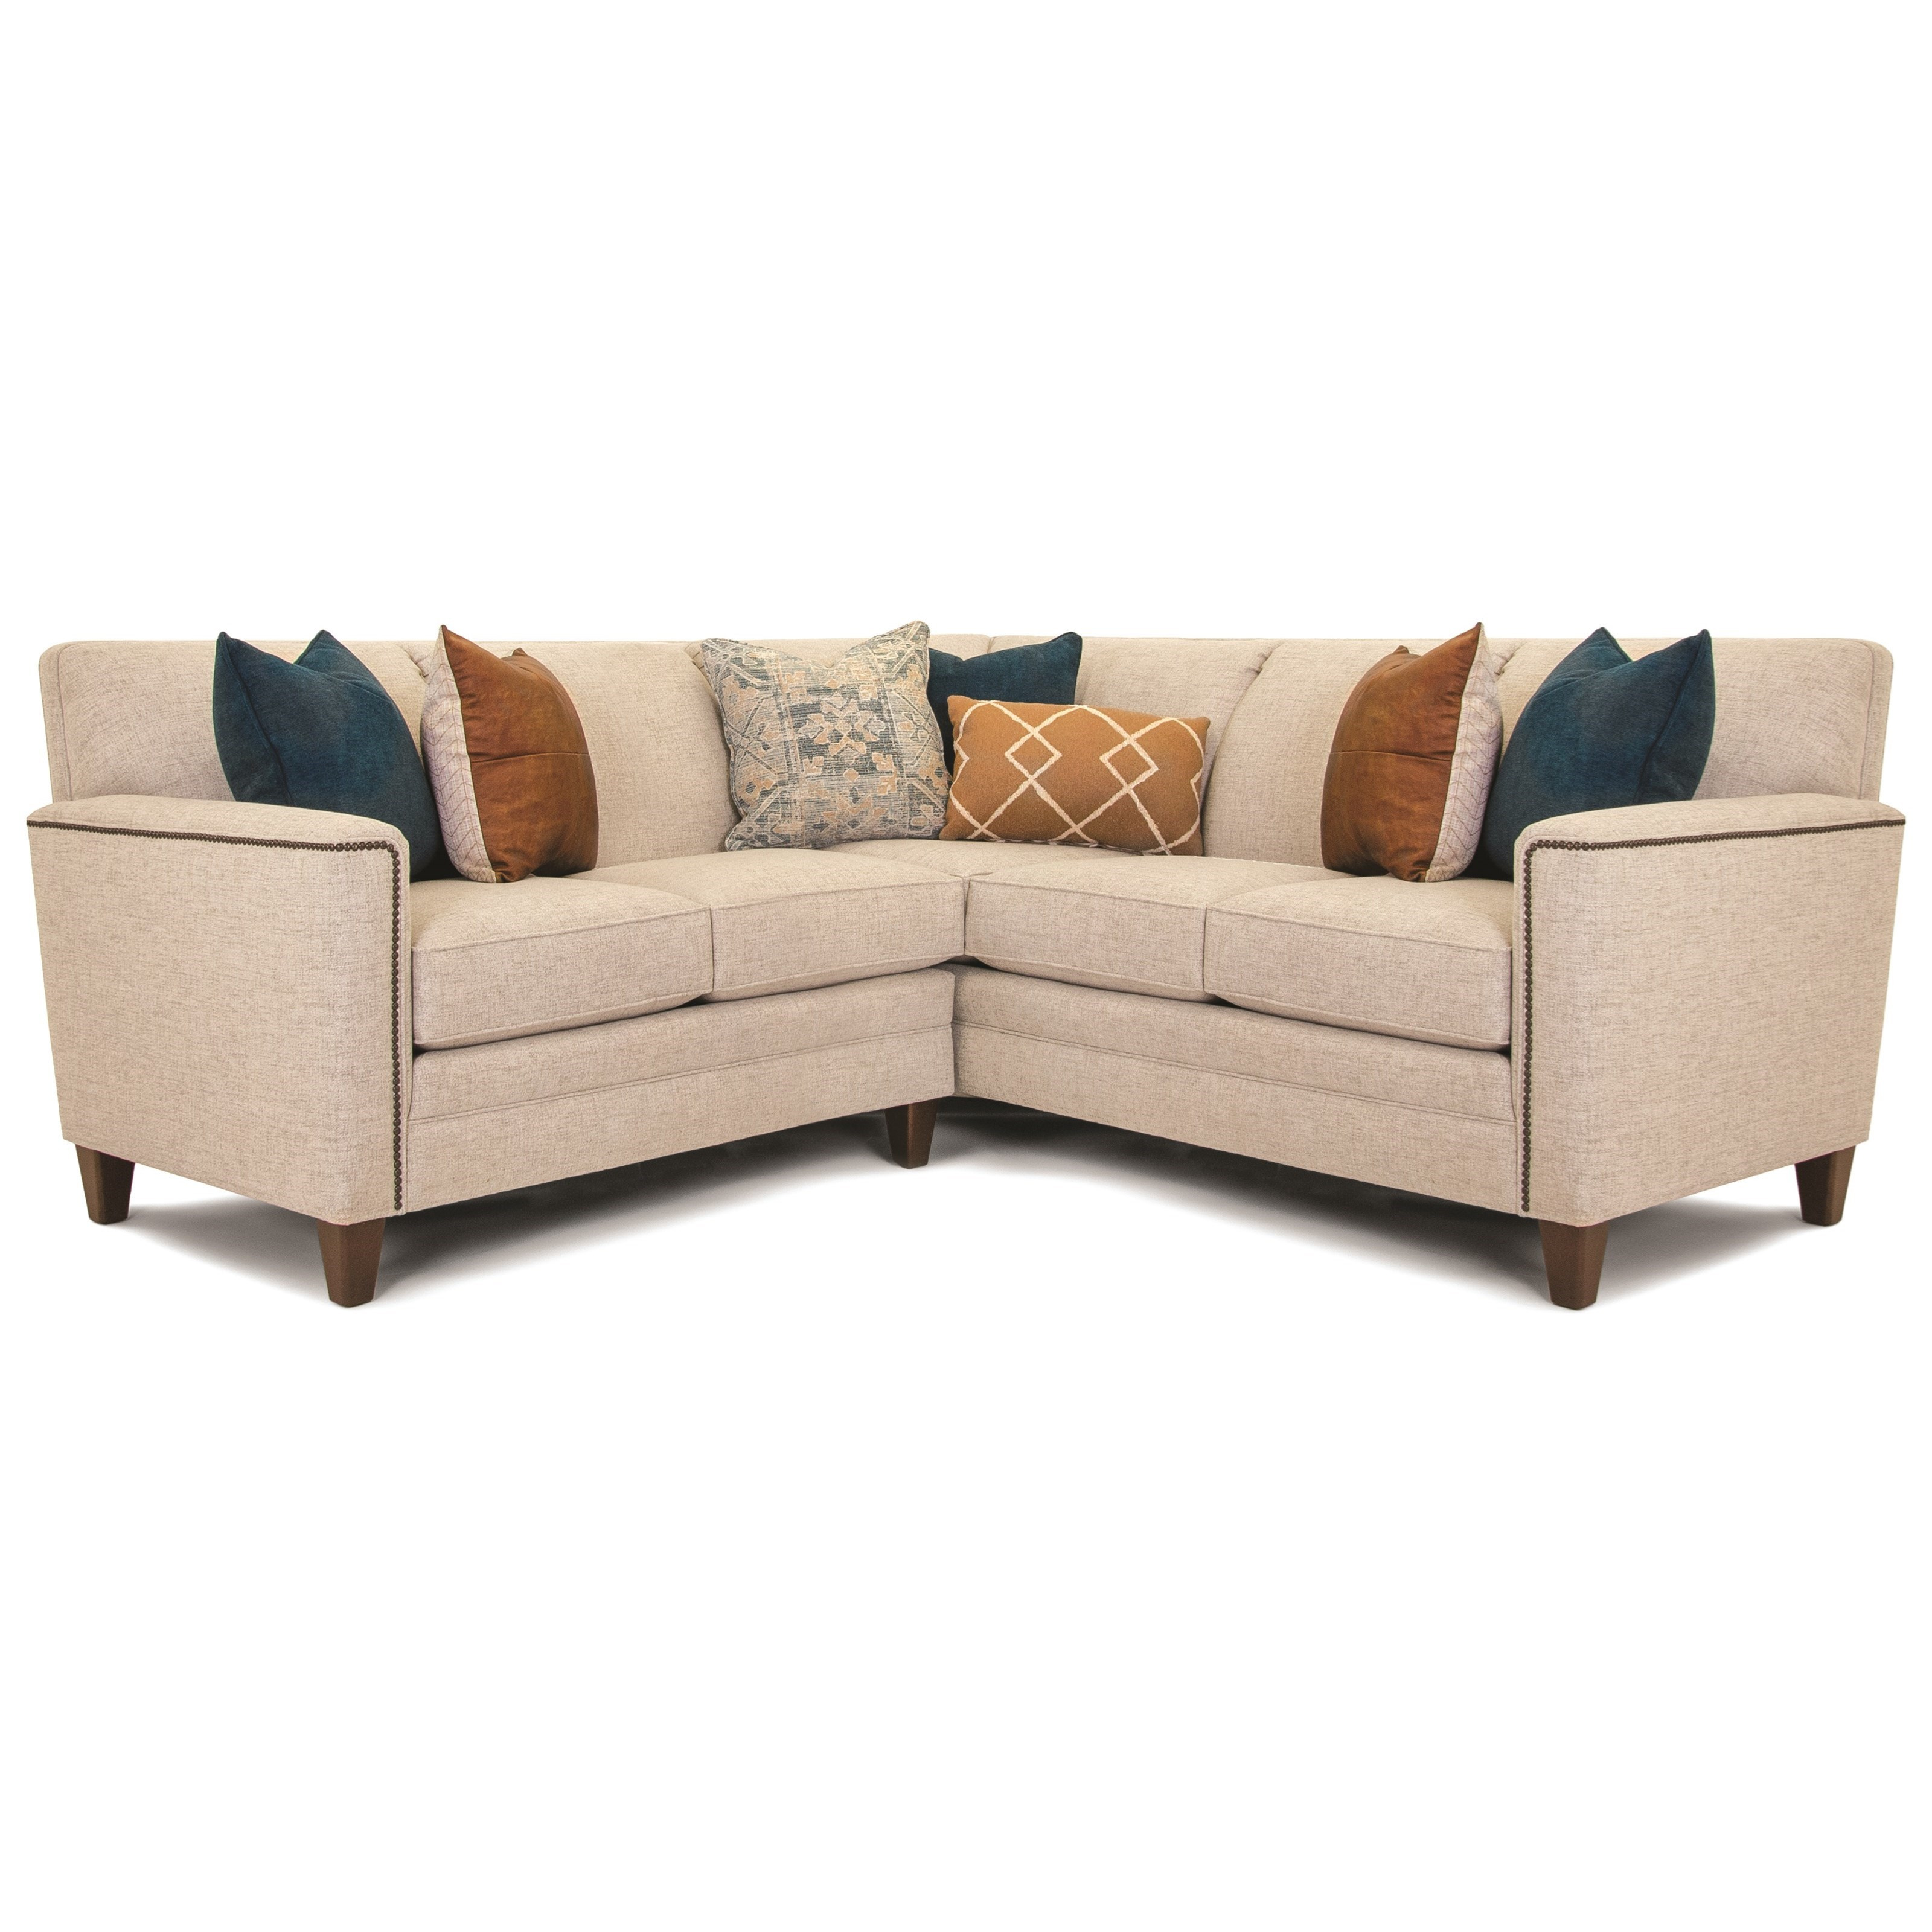 Build Your Own 3000 Series Customizable 2-Piece Sectional by Smith Brothers at Story & Lee Furniture